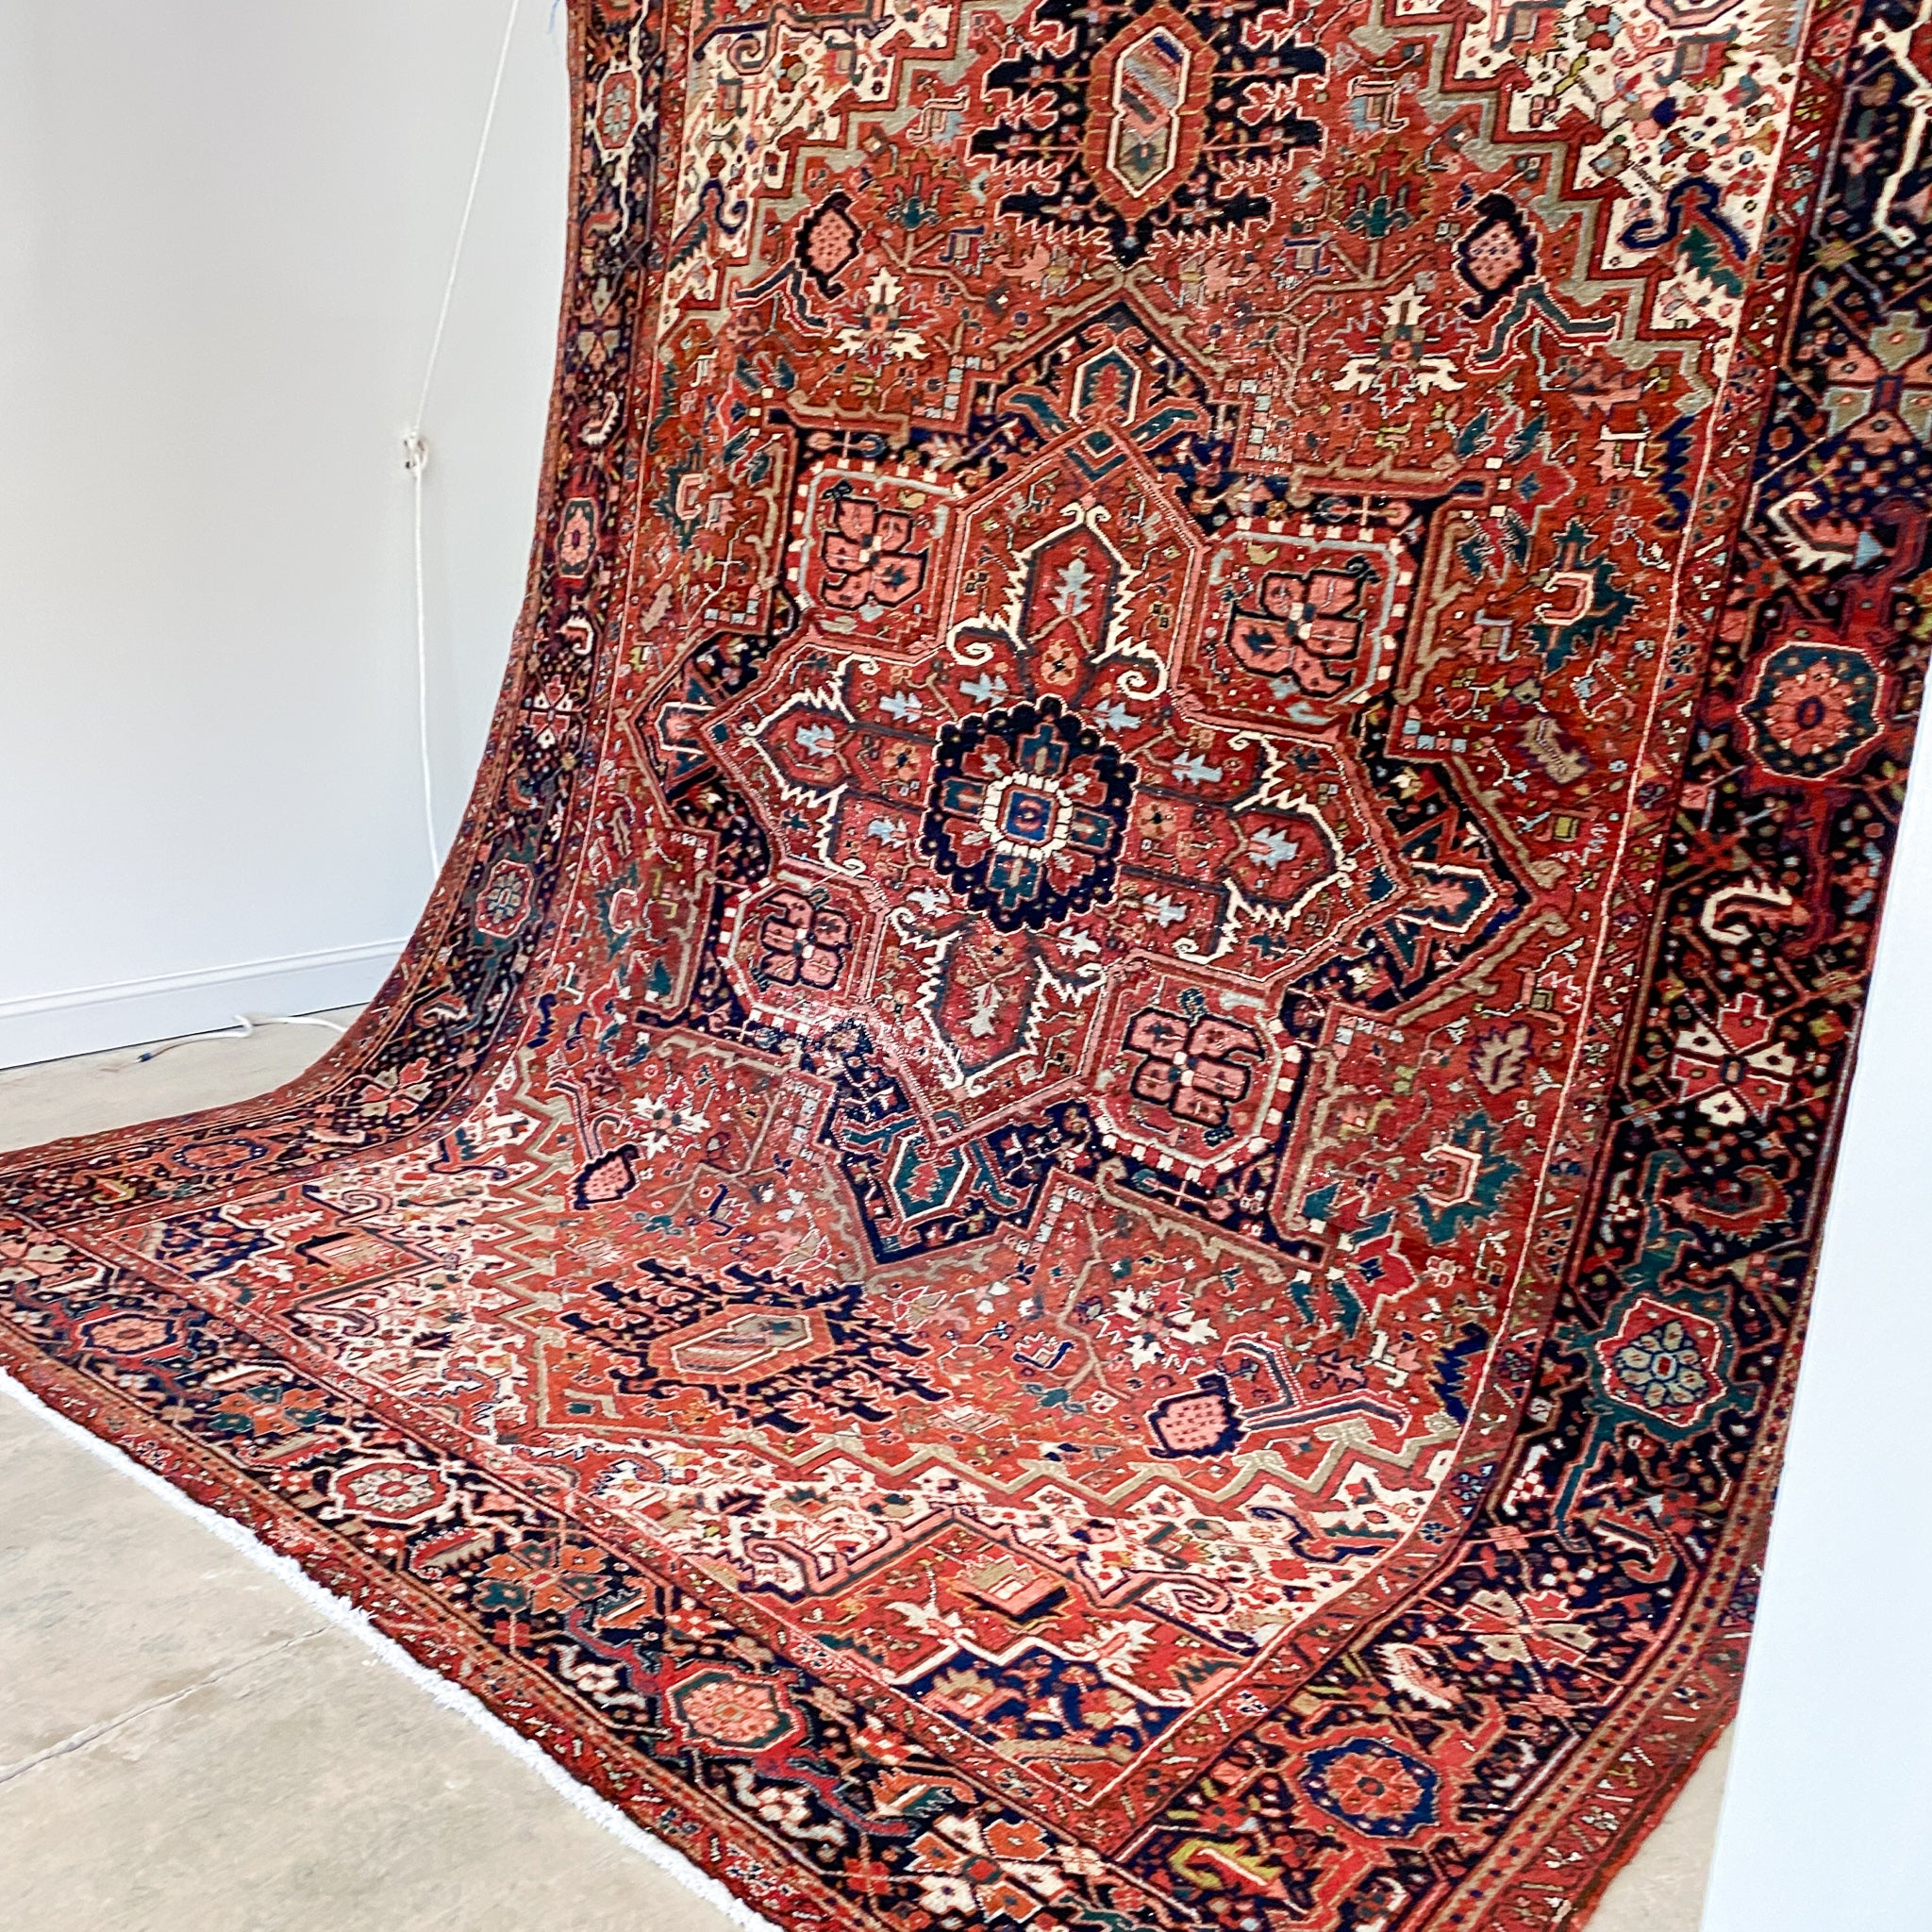 ON HOLD 2233 Handwoven Antique Rug 8'11x11'1